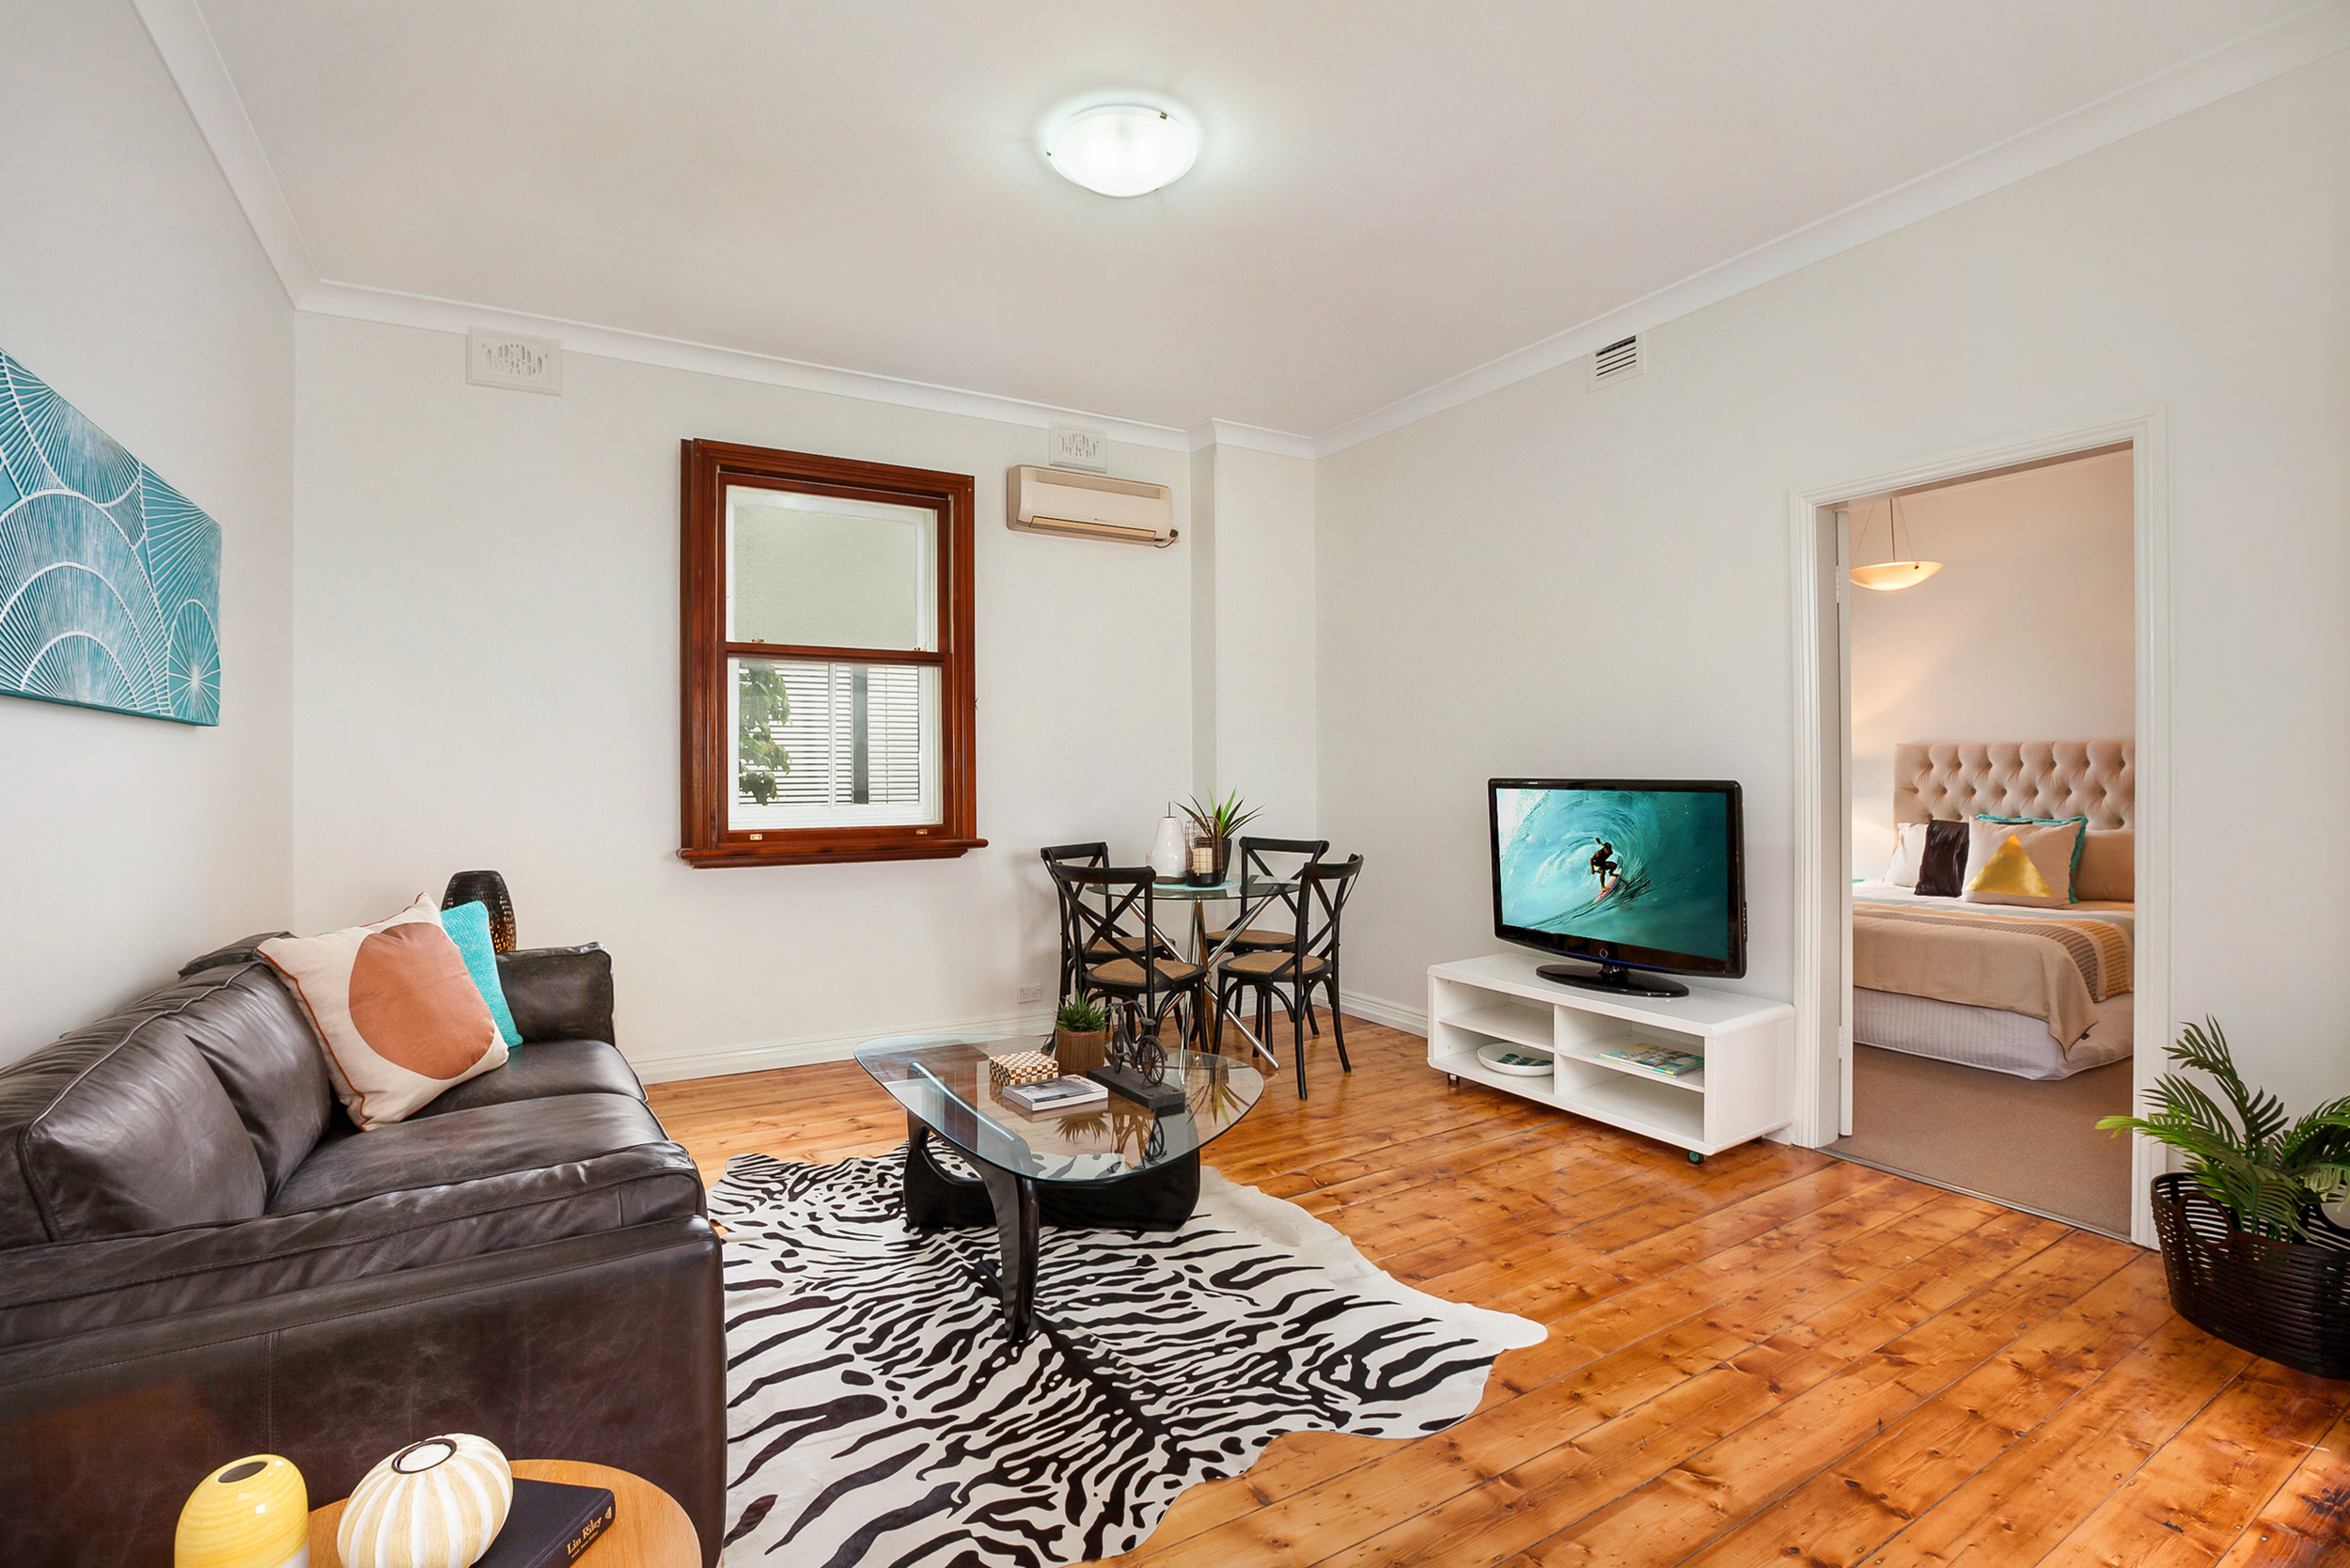 Middleton-St-3-24-Petersham-Living.jpg